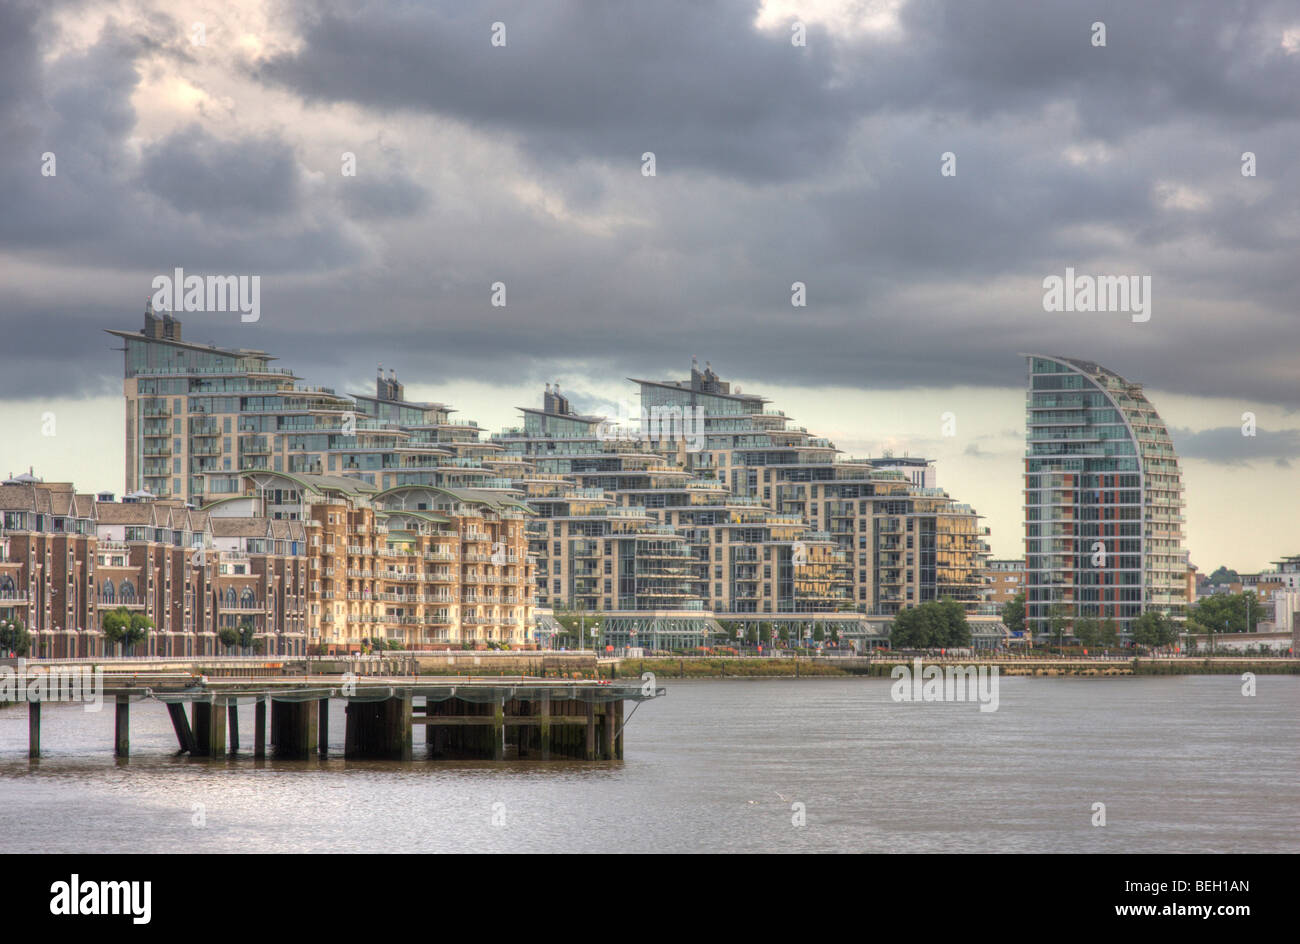 Battersea Reach viewed from across the River Thames, with the heliport in view. - Stock Image